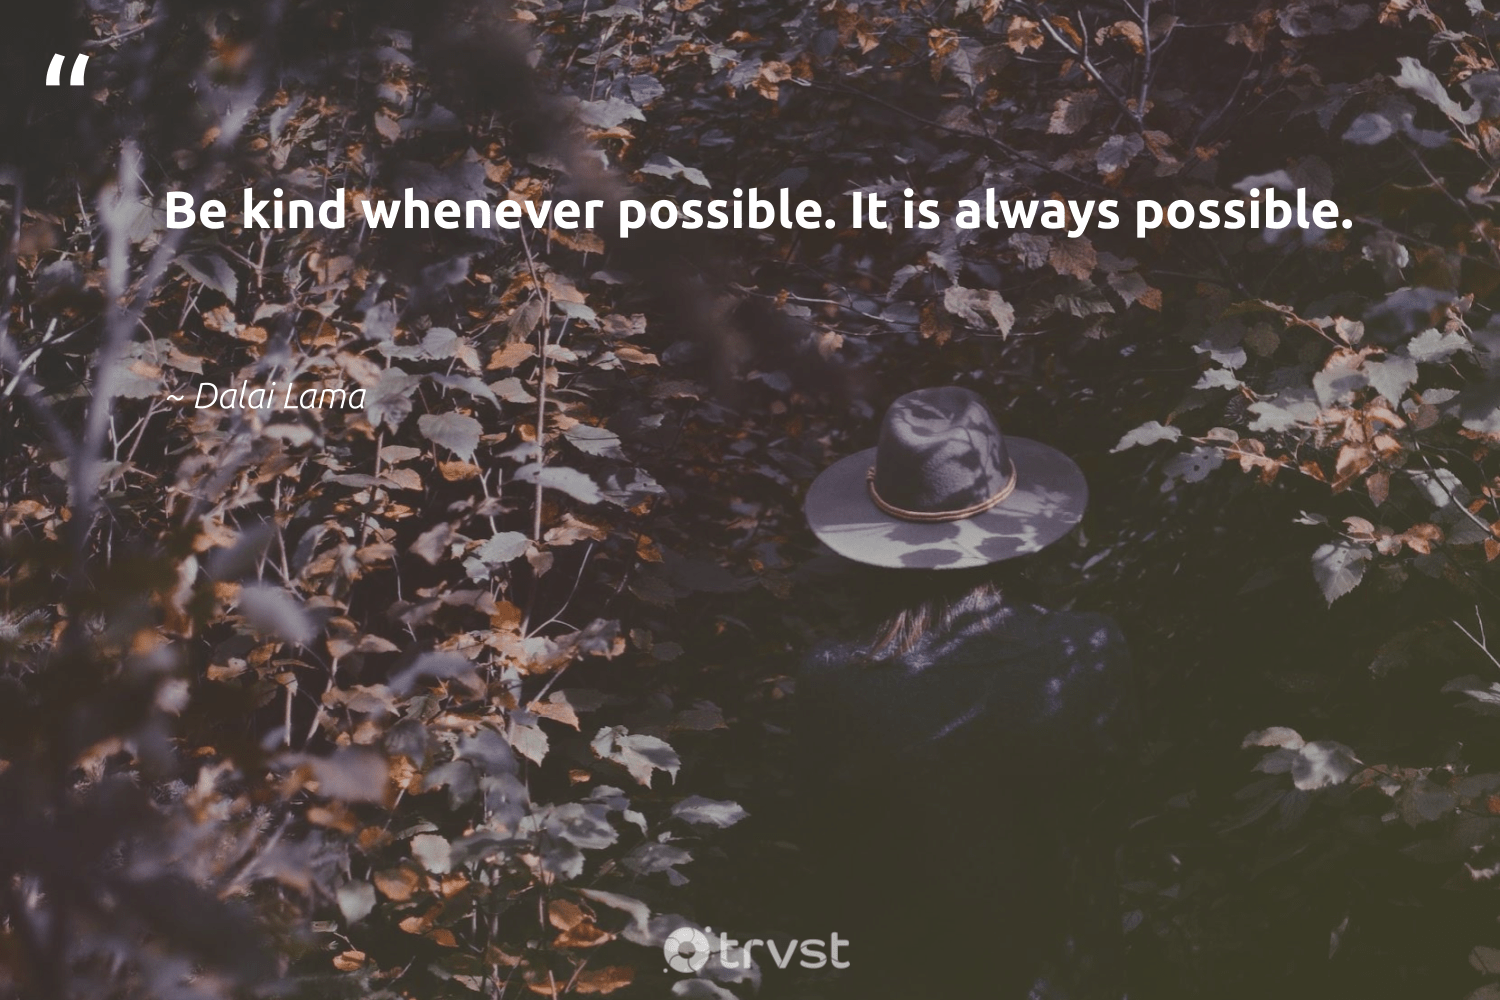 """Be kind whenever possible. It is always possible.""  - Dalai Lama #trvst #quotes #begreat #takeaction #nevergiveup #dosomething #futureofwork #collectiveaction #softskills #impact #beinspired #dogood"